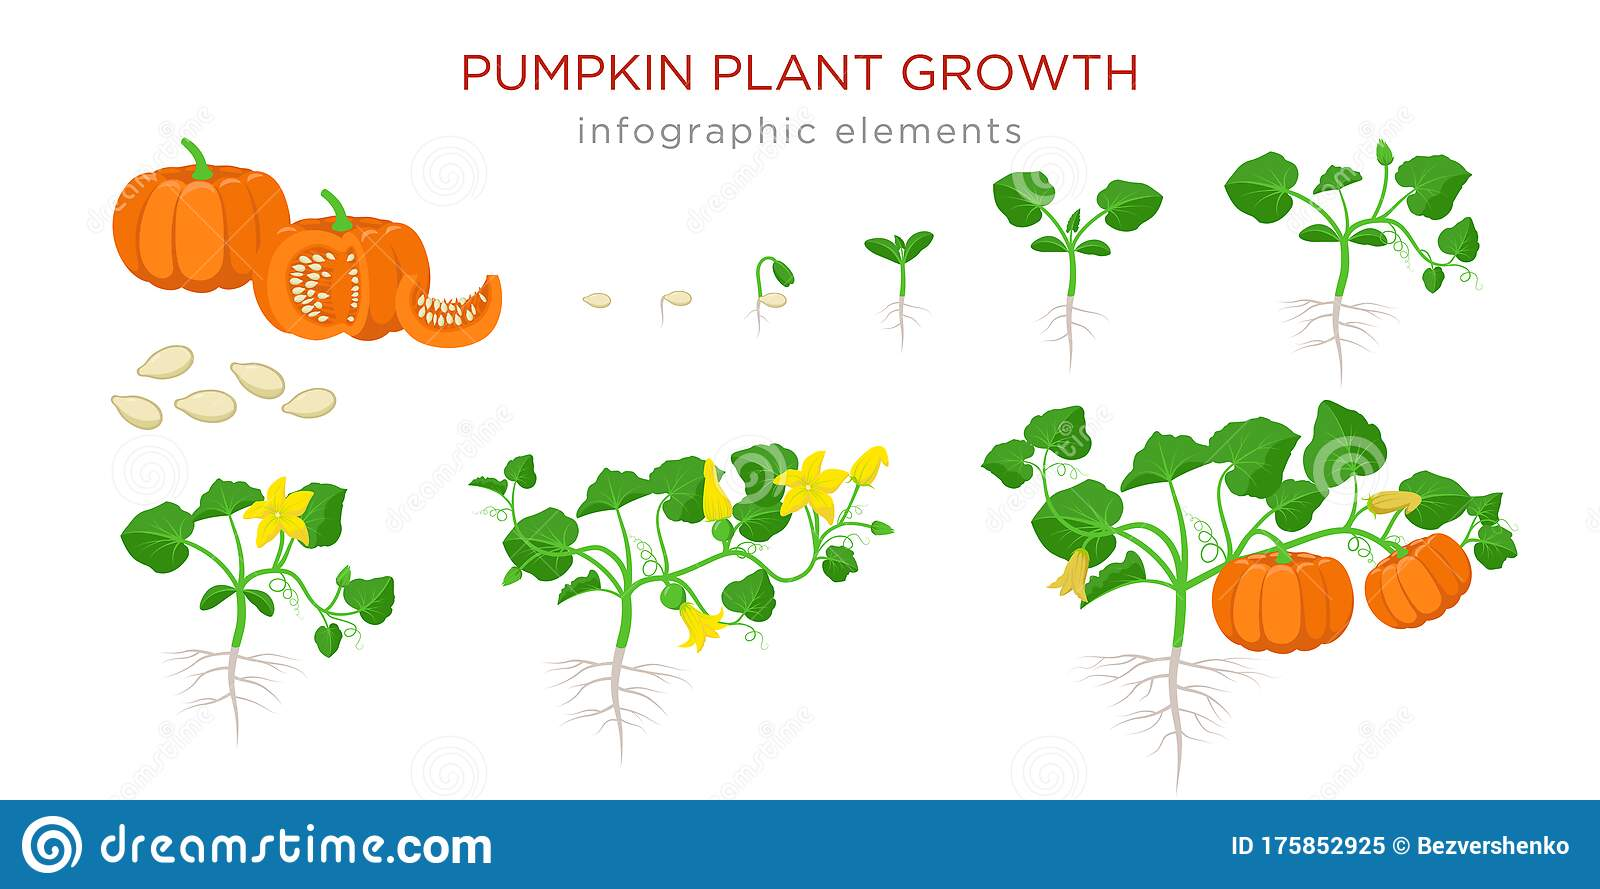 Pumpkin Plant Growth Stages Infographic Elements In Flat